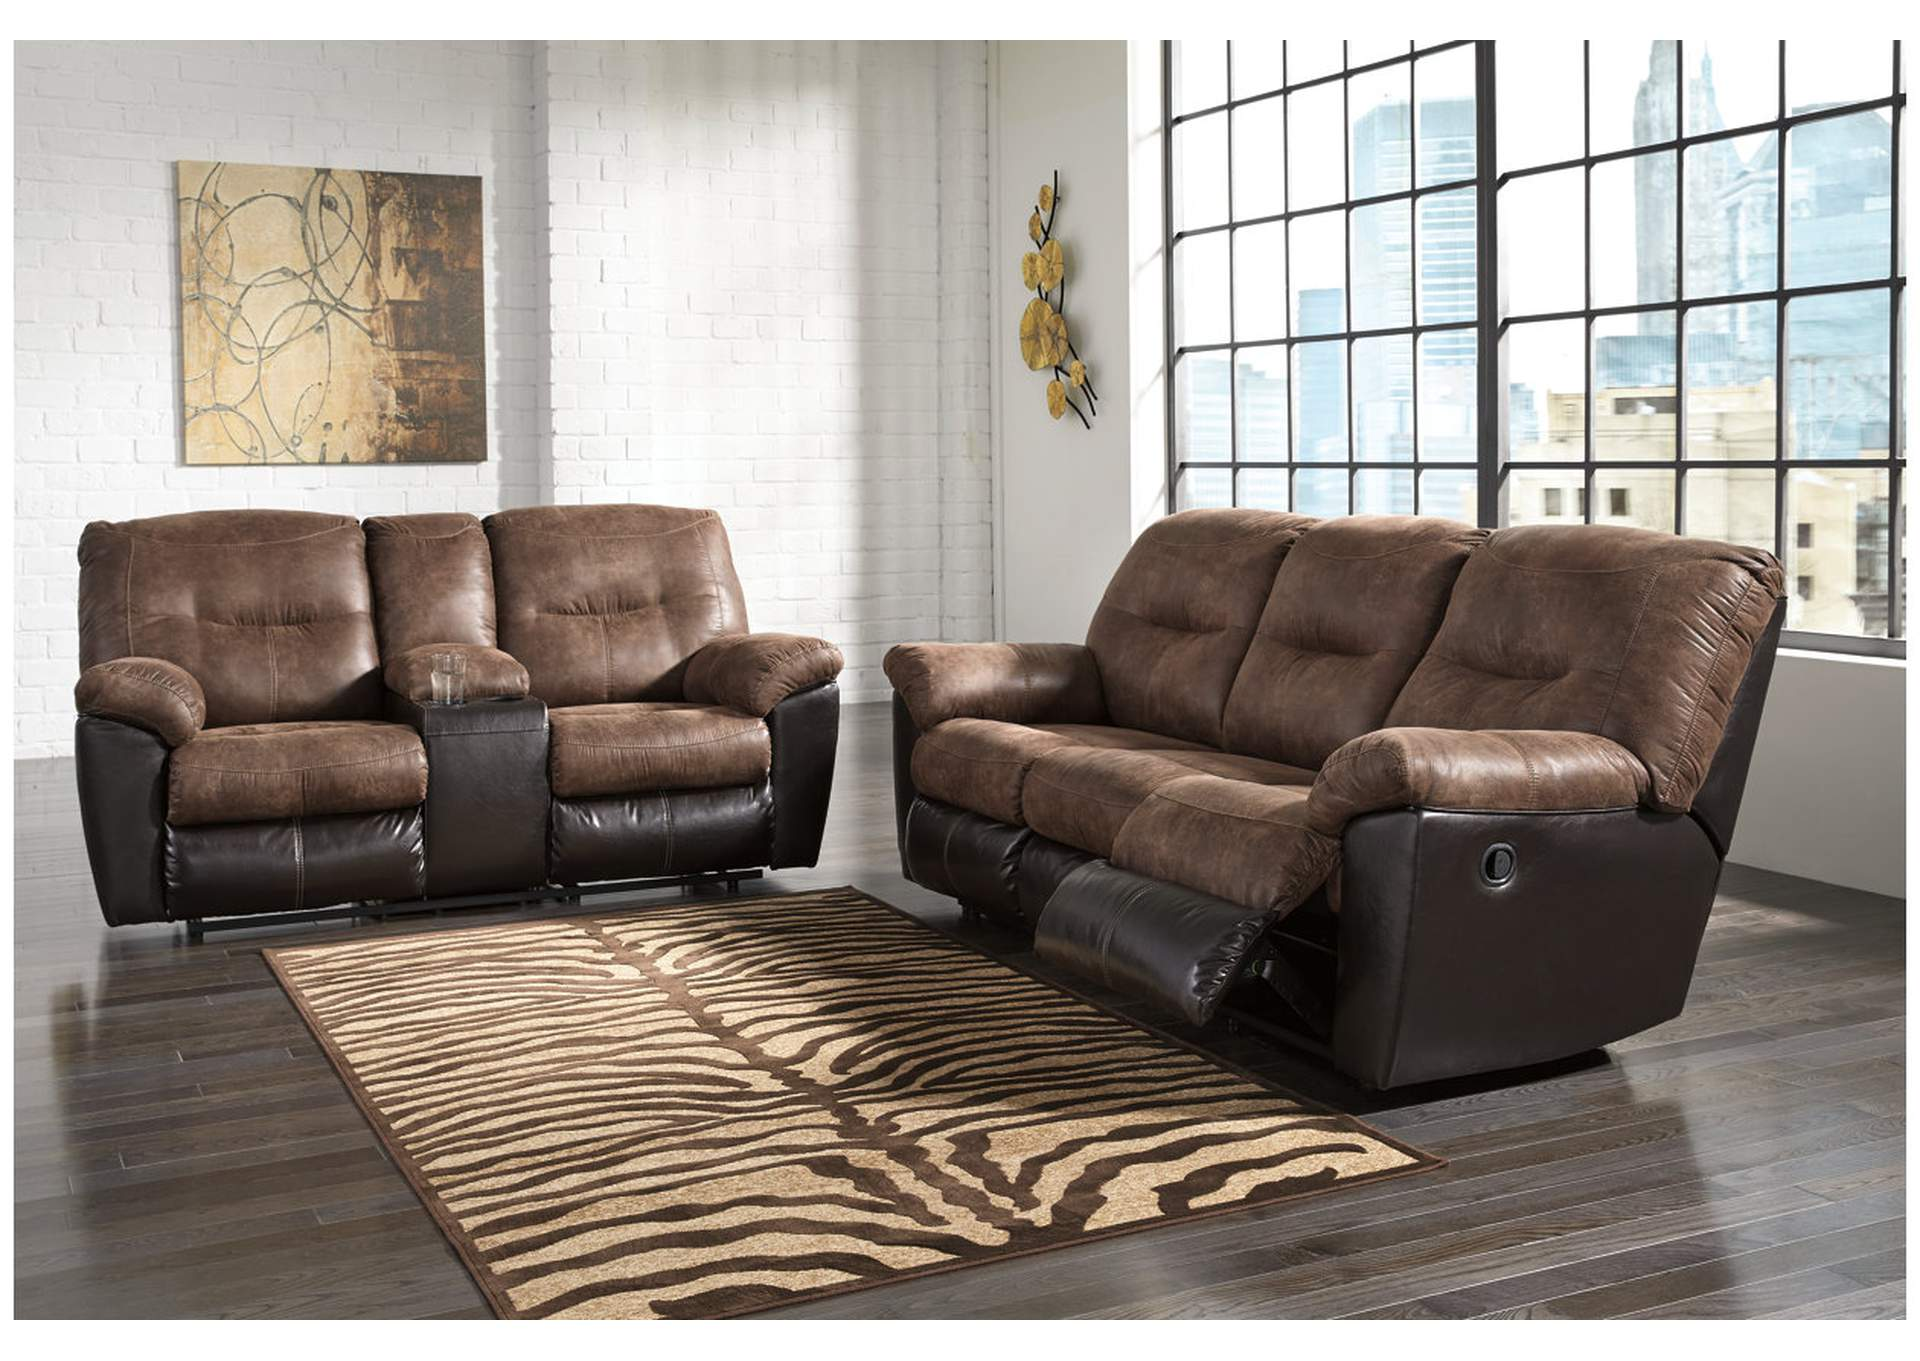 Follett Coffee Reclining Sofa & Loveseat,Signature Design By Ashley